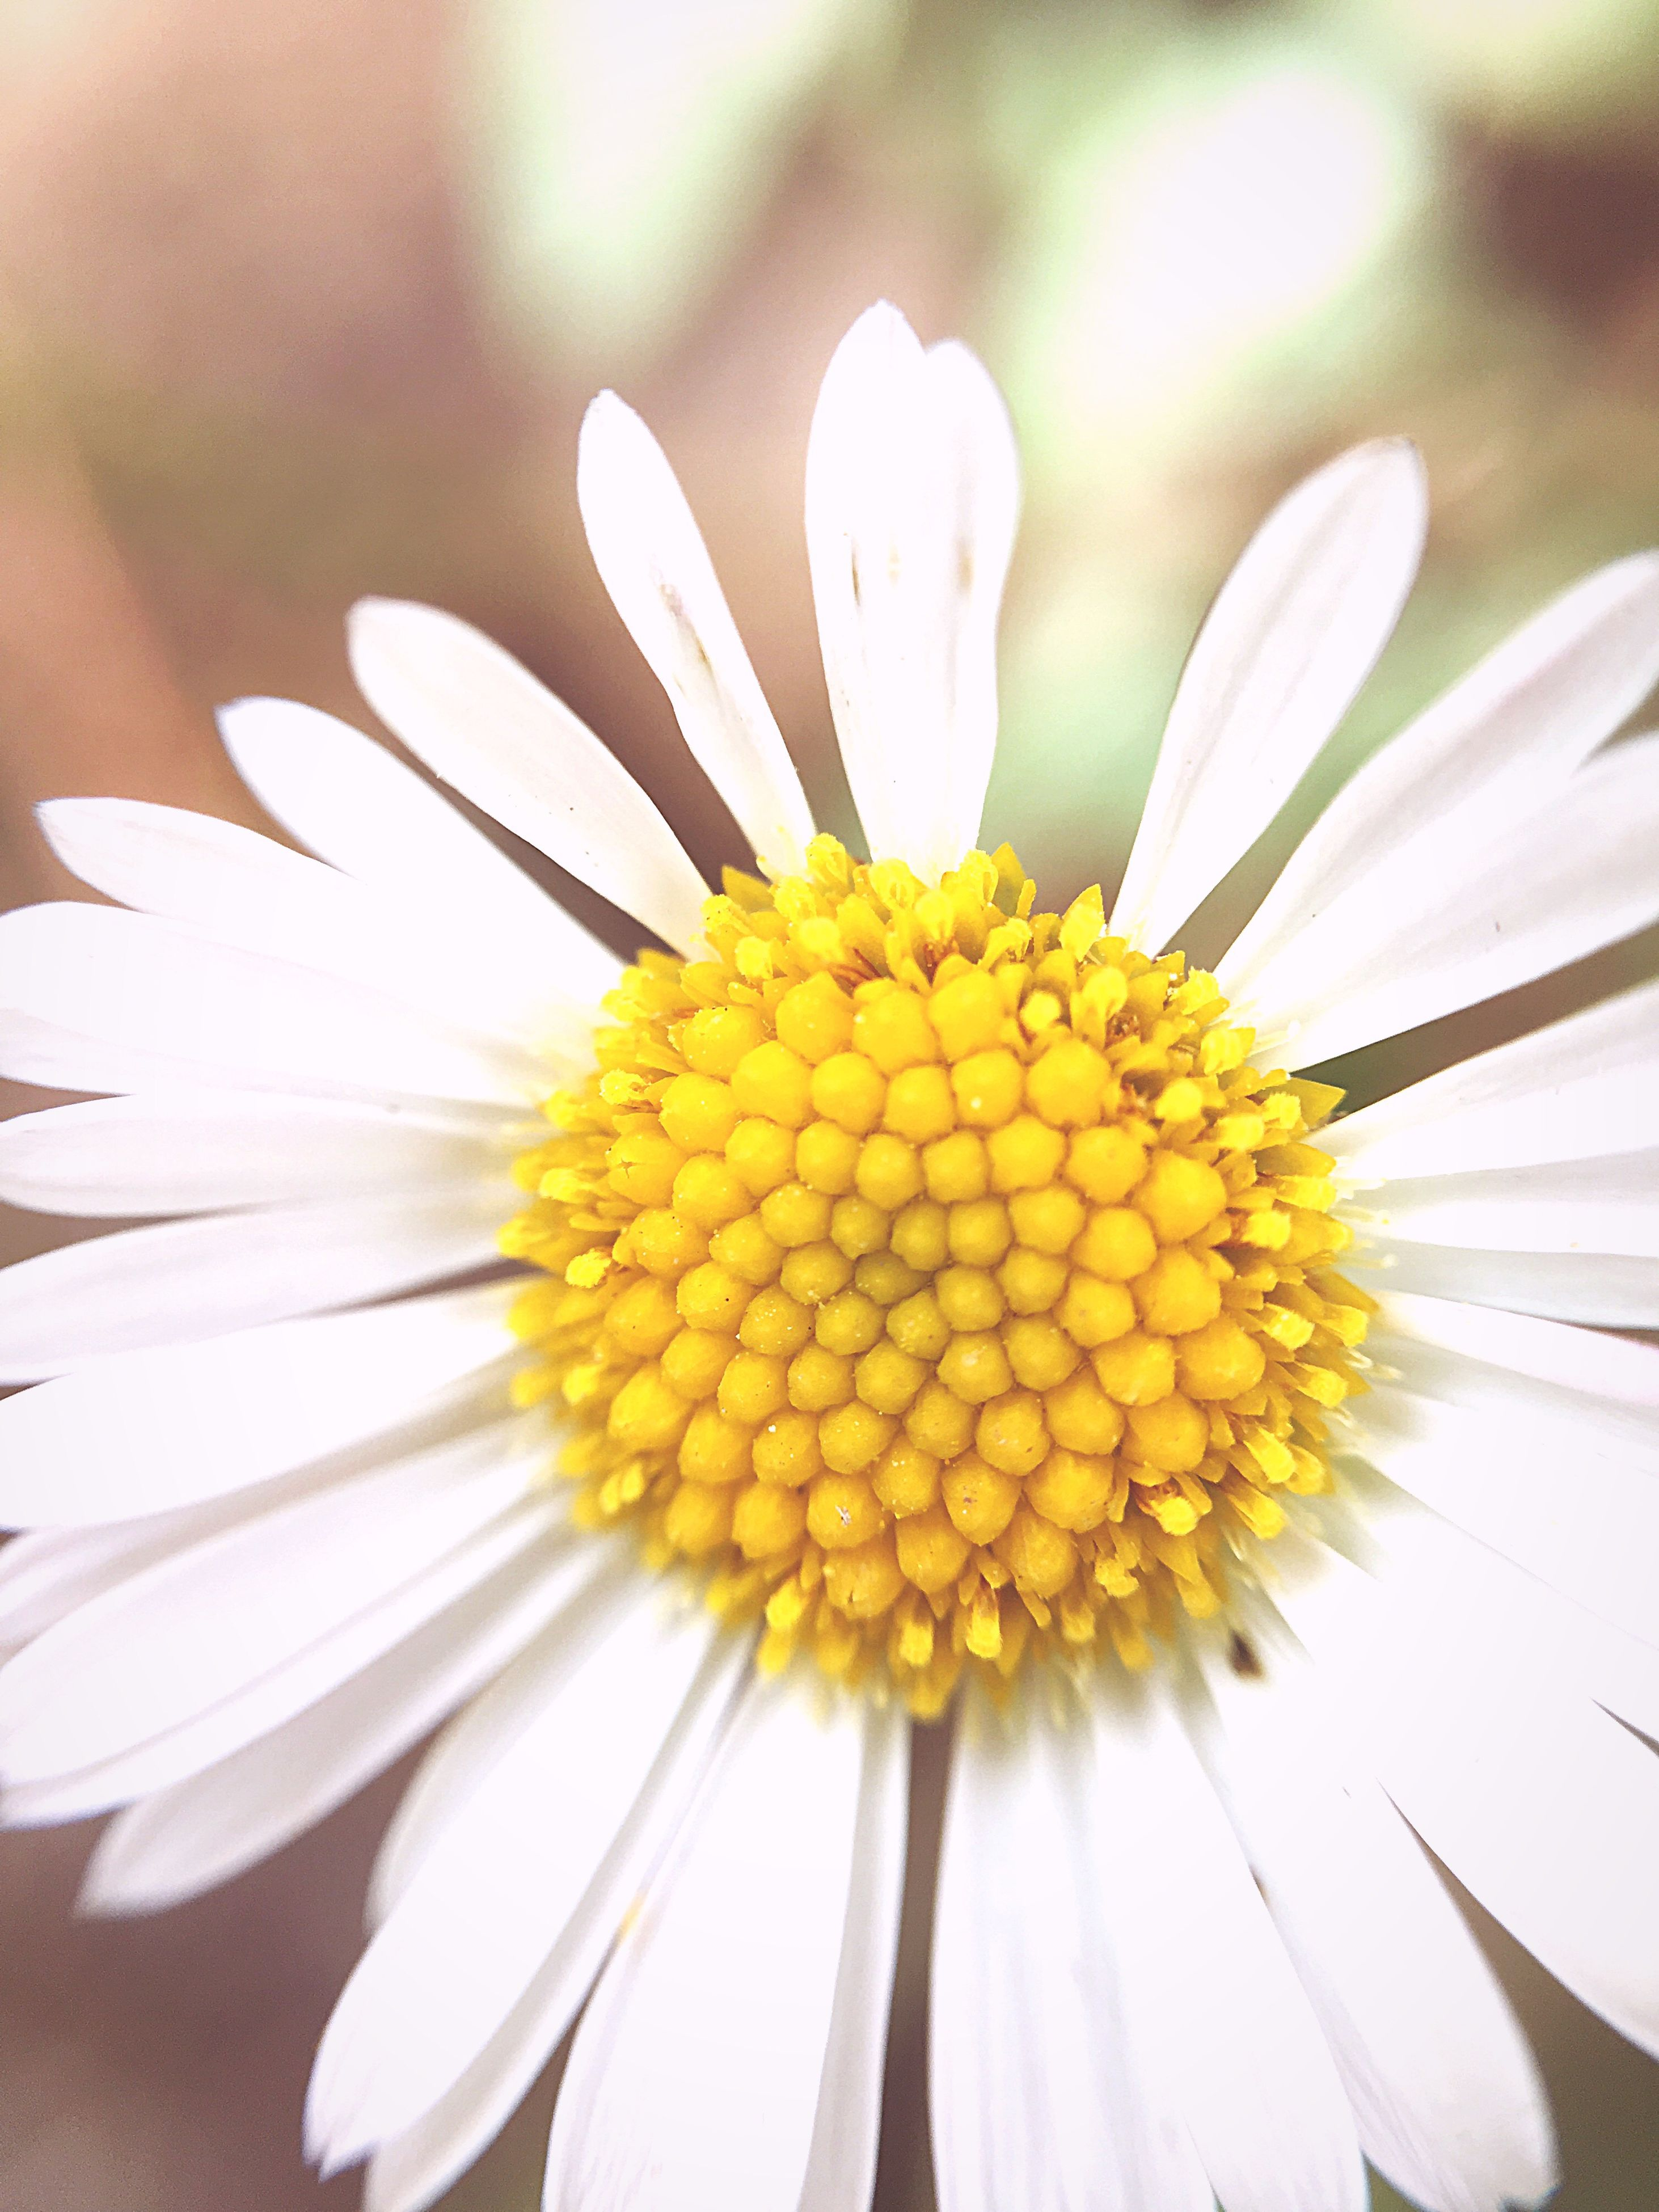 flower, freshness, fragility, flower head, petal, close-up, daisy, beauty in nature, growth, single flower, springtime, in bloom, white color, yellow, nature, selective focus, macro, plant, pollen, botany, blossom, extreme close-up, softness, focus on foreground, bloom, blooming, no people